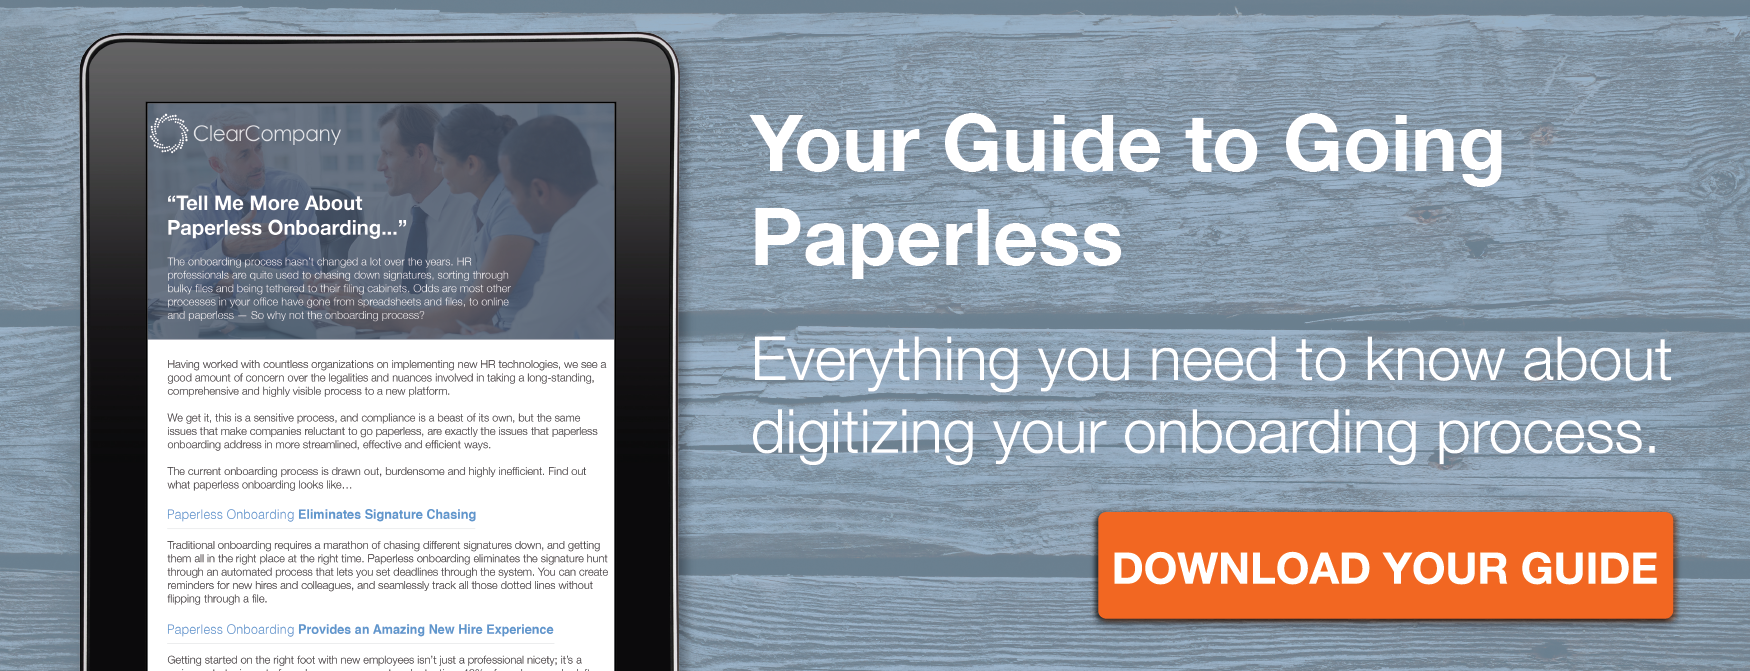 6-15-15_Header_Image_Going_Paperless-01-1